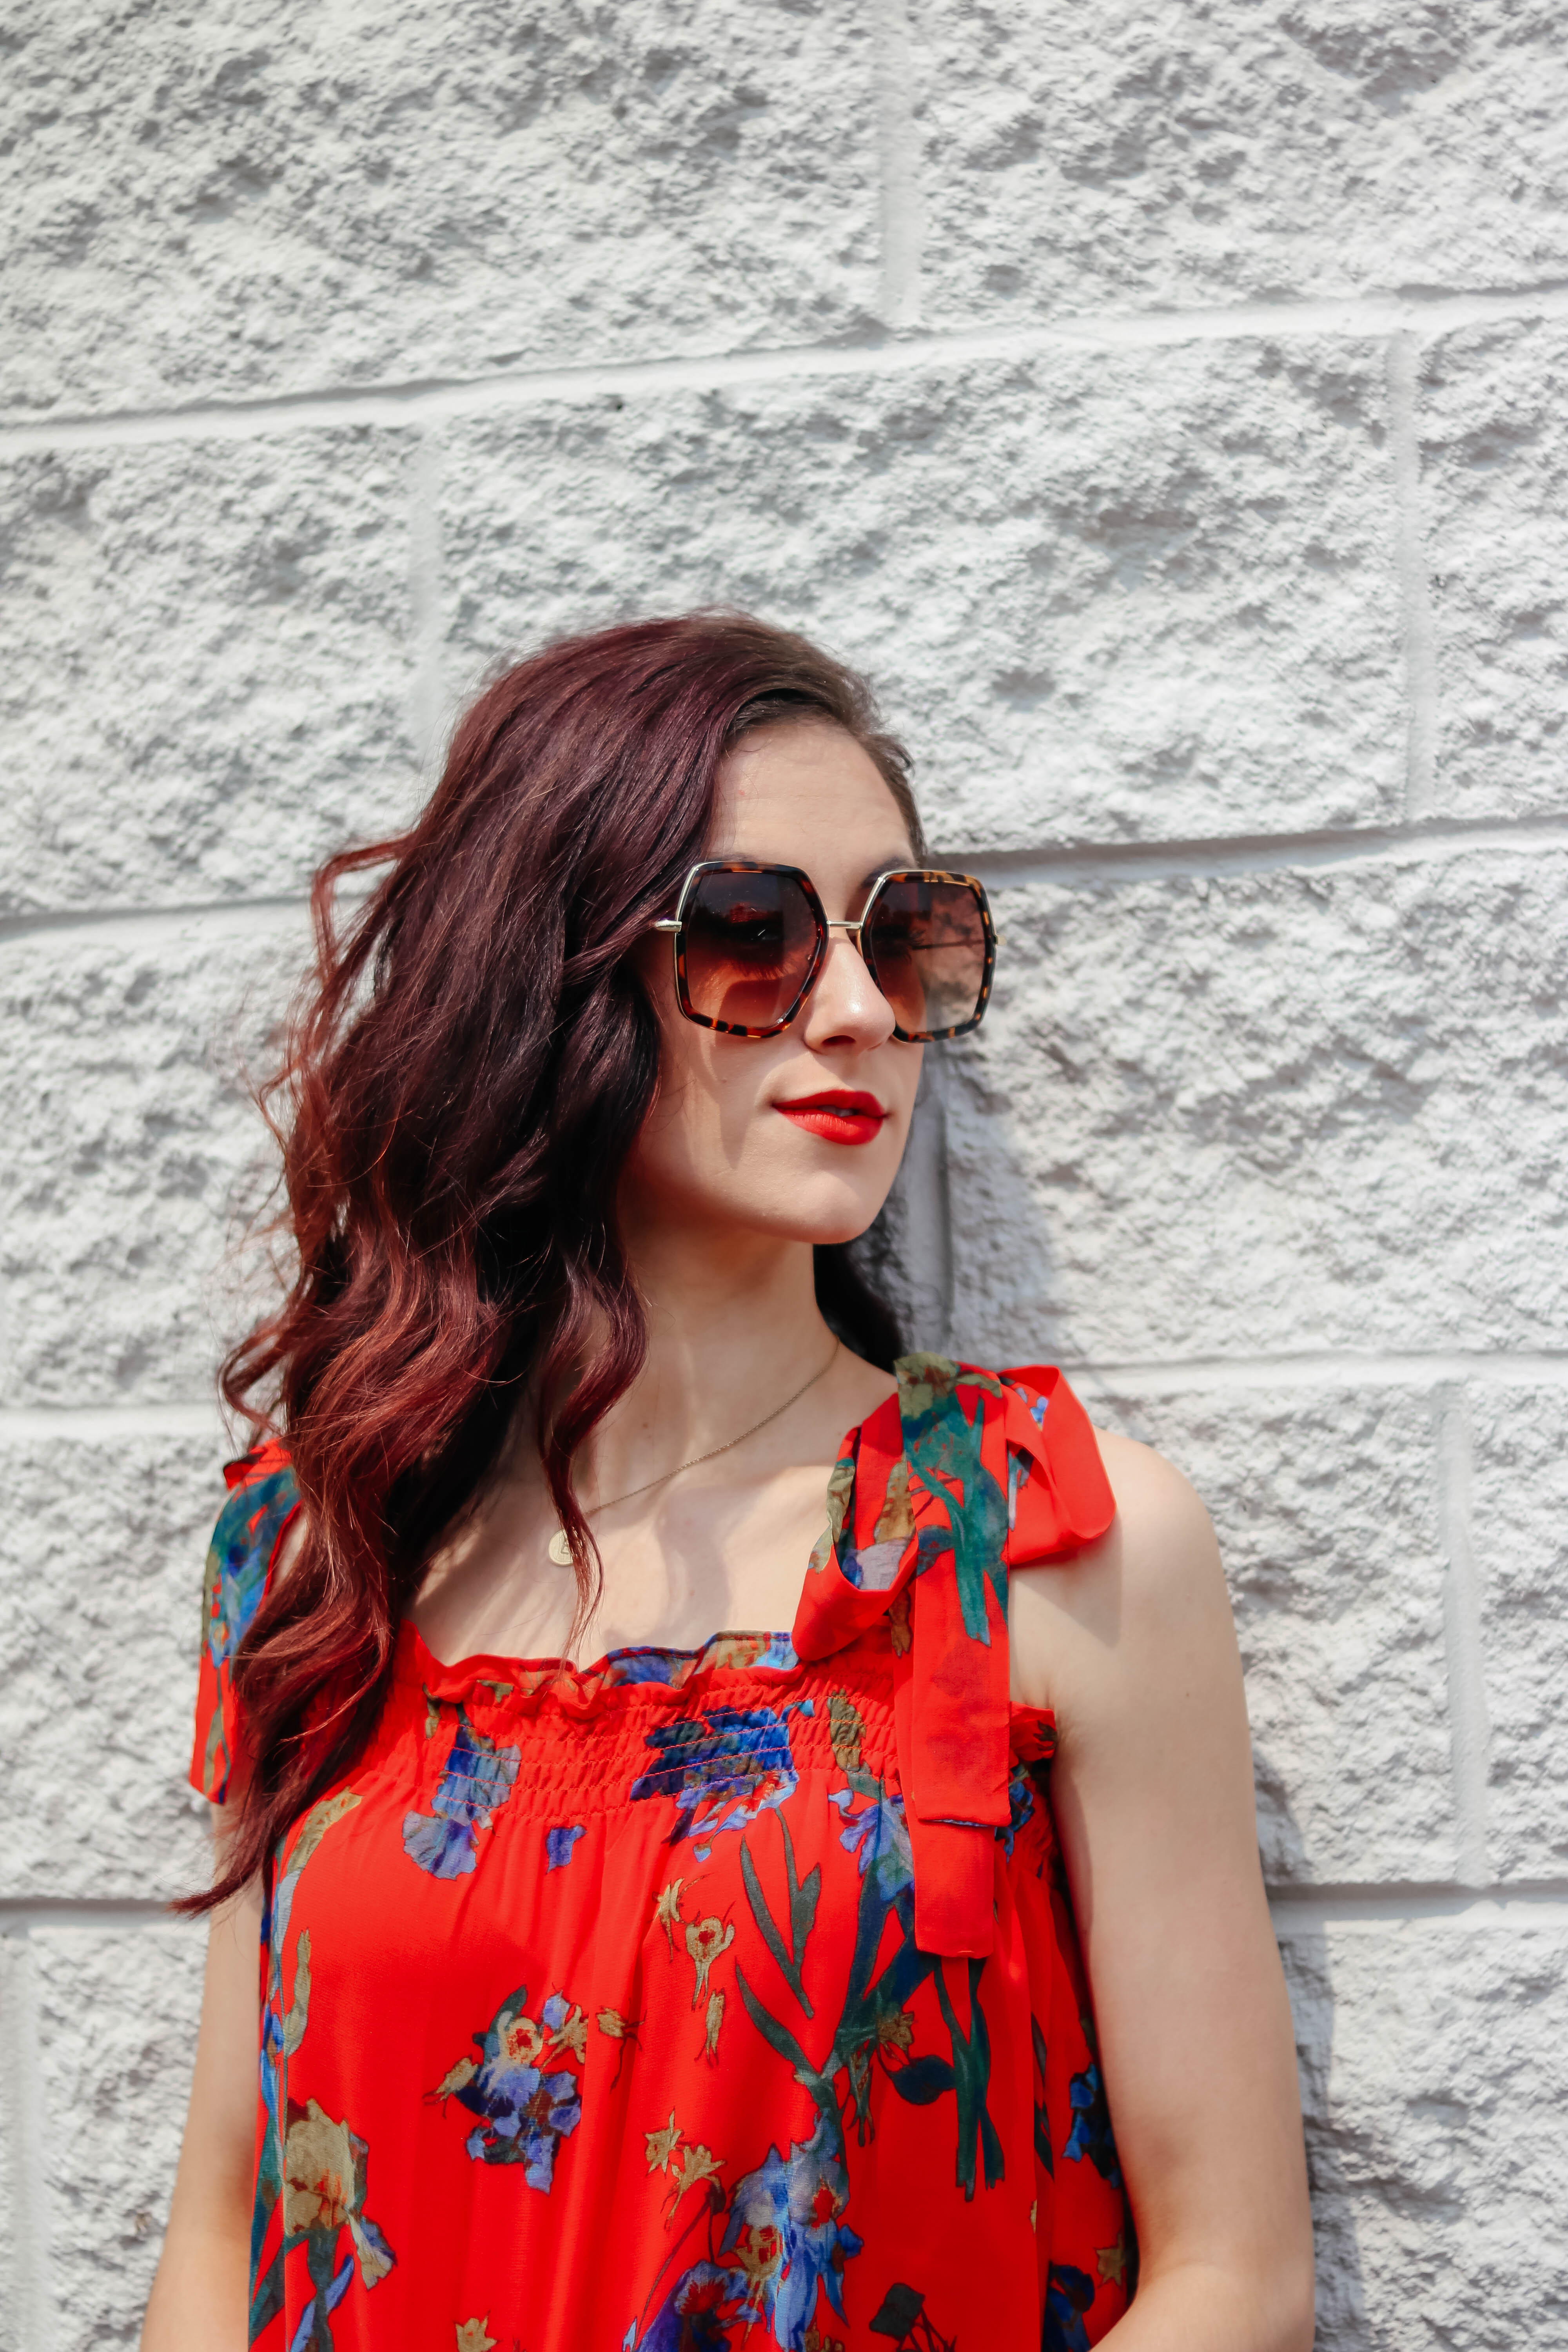 Red Watercolor Tank Top Outfit for Summer - #AskE Q&A Post on Coming Up Roses, featuring Tula discount code, Lululemon versus Spanx, + MORE!